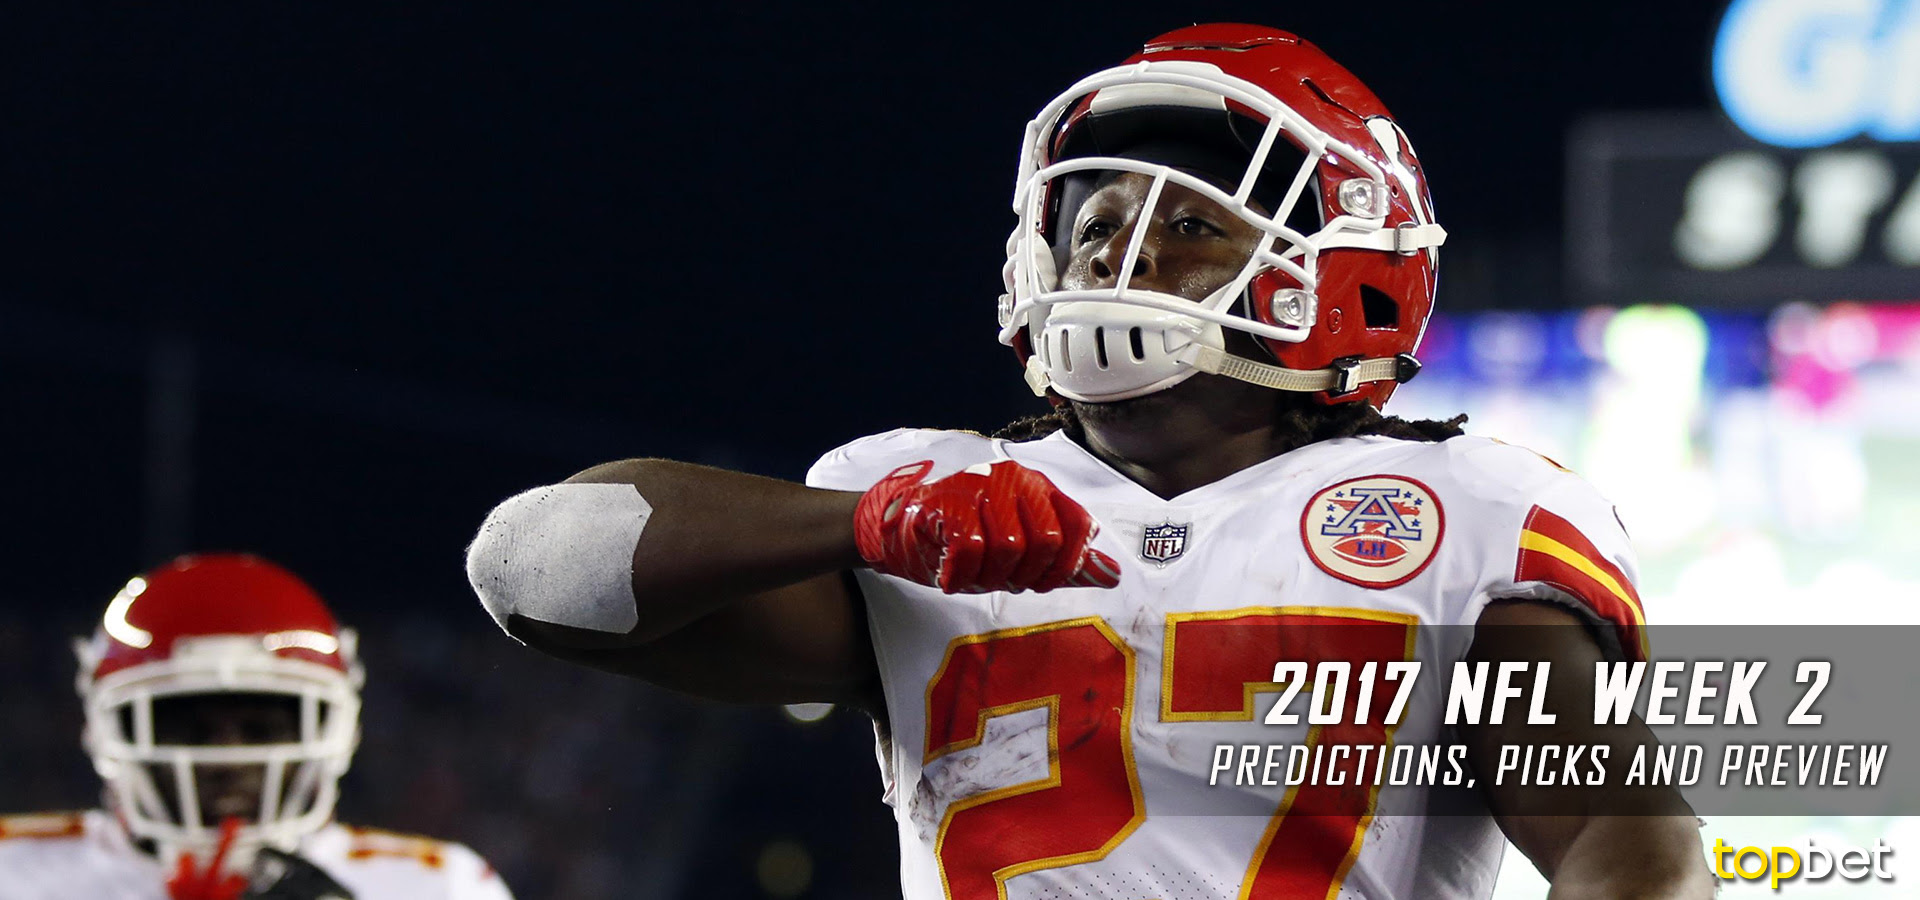 2017 NFL Week 3 Predictions, Odds, Picks and Betting Preview